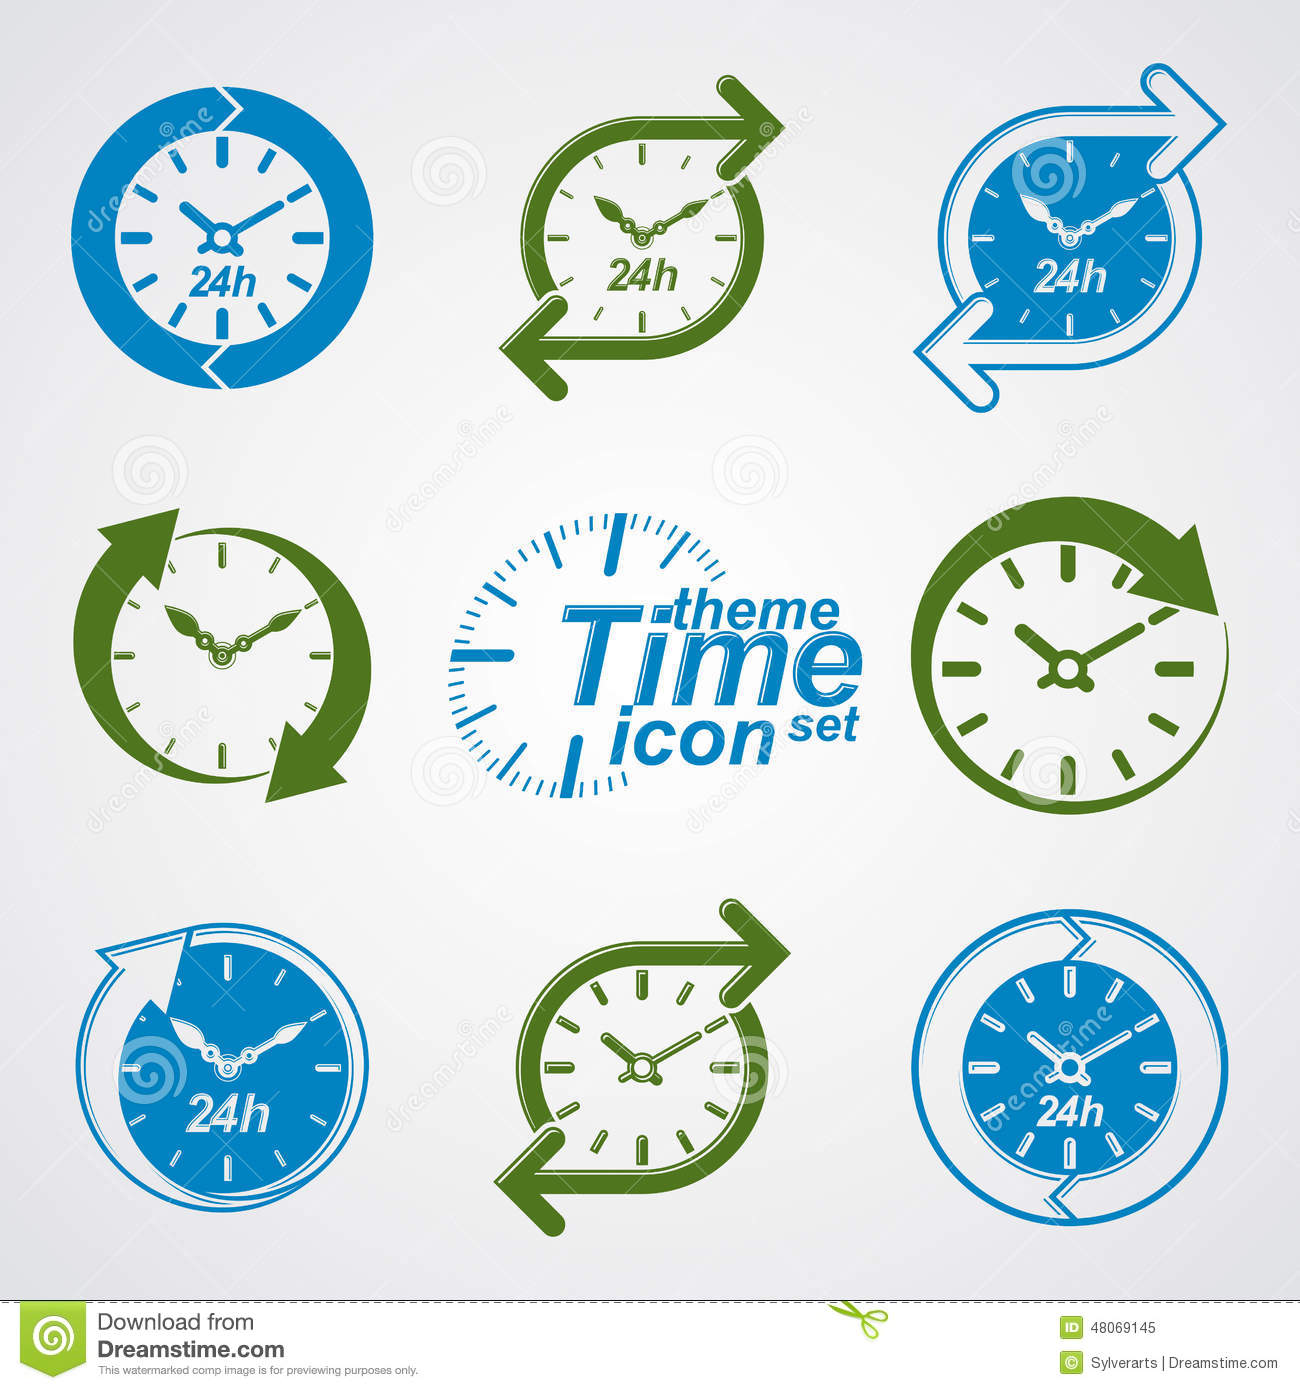 Open Around The Clock 24 Hours 7 Days A Week Icons Set Stock.